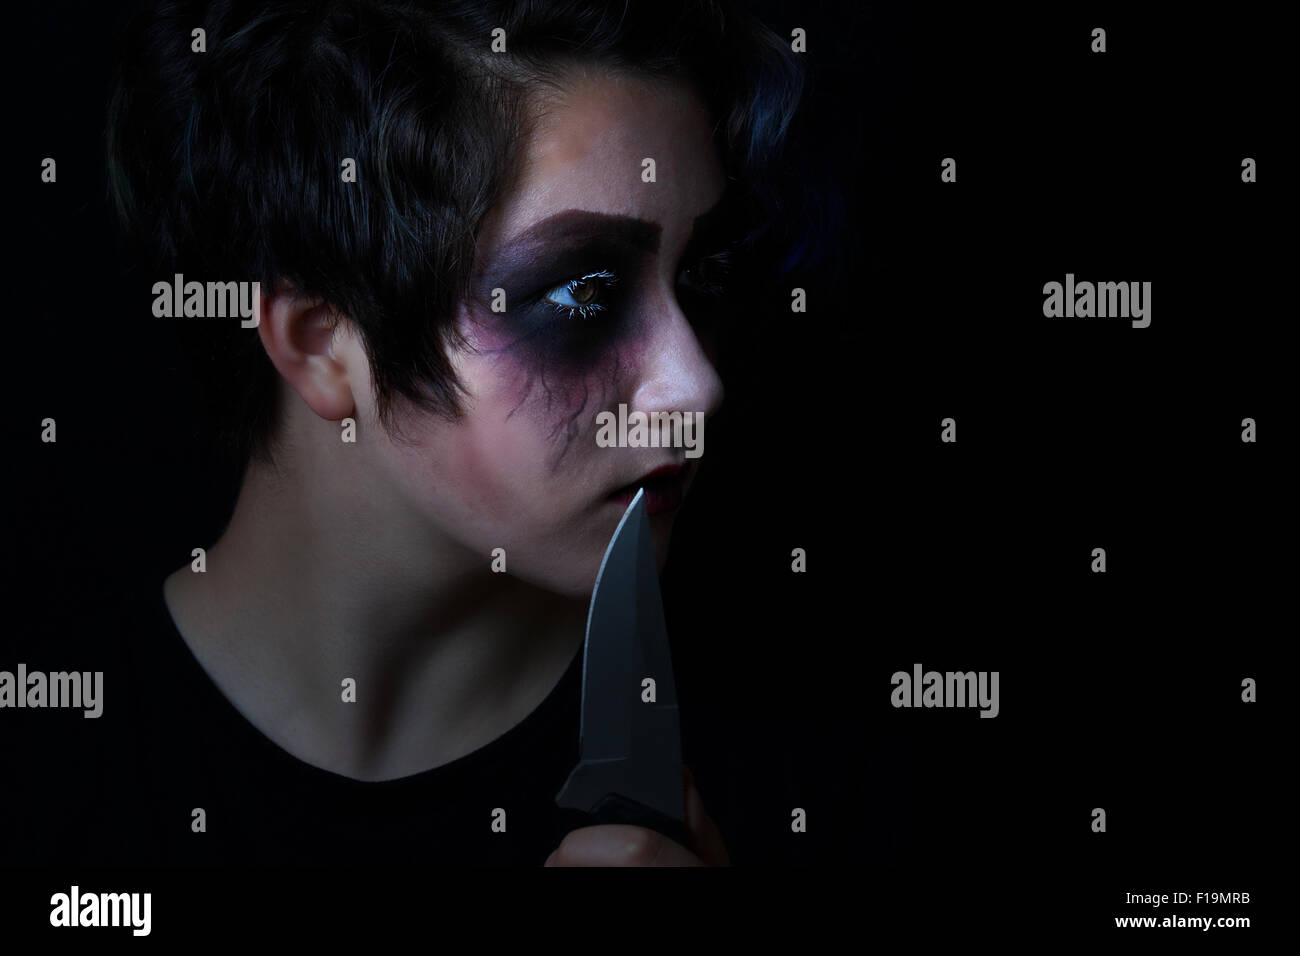 Teen girl masked in scary makeup with combat knife on black background. Stock Photo